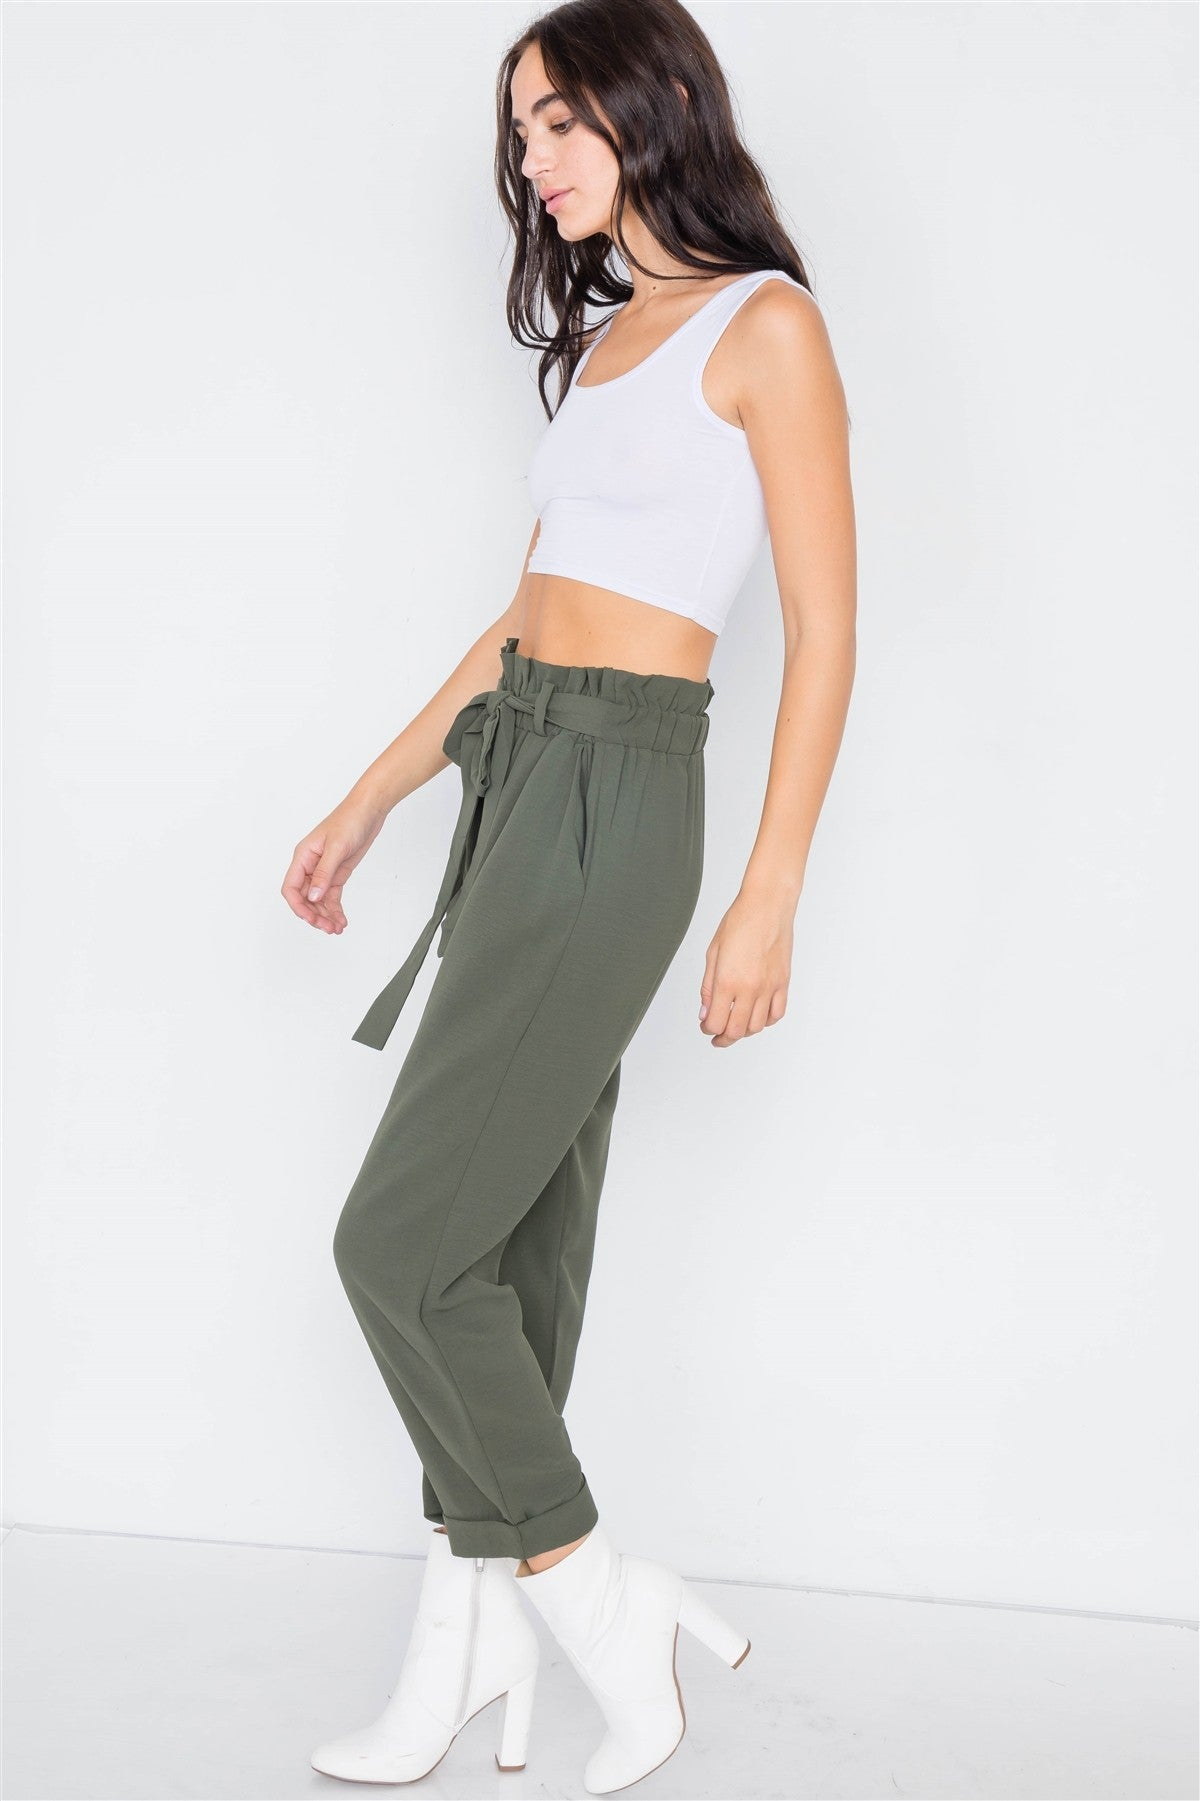 Dark Olive Office Chic Ankle Length Dress Pants - Radiant